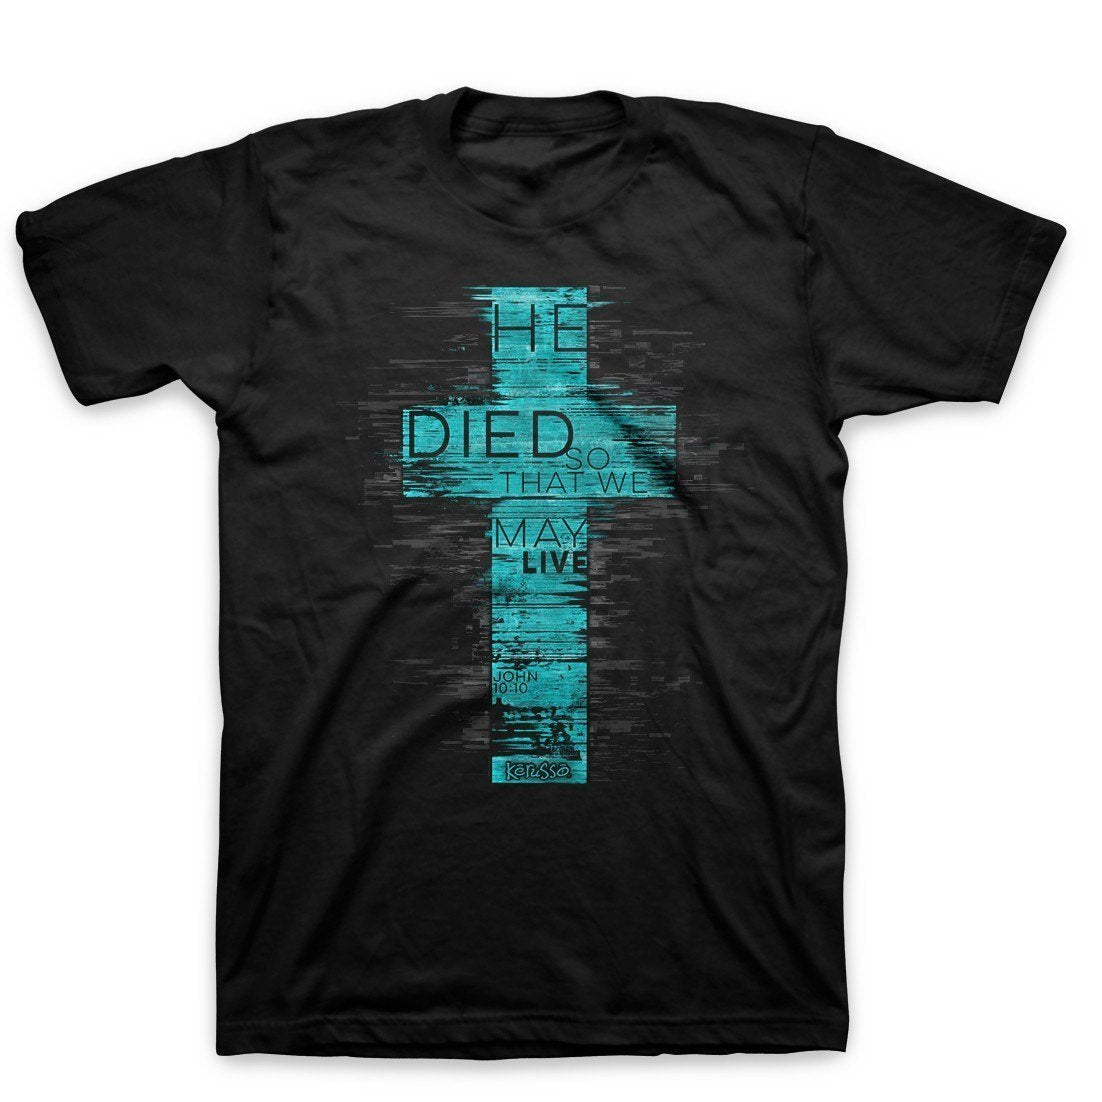 He Died So That We May Live Christian T-Shirt ™